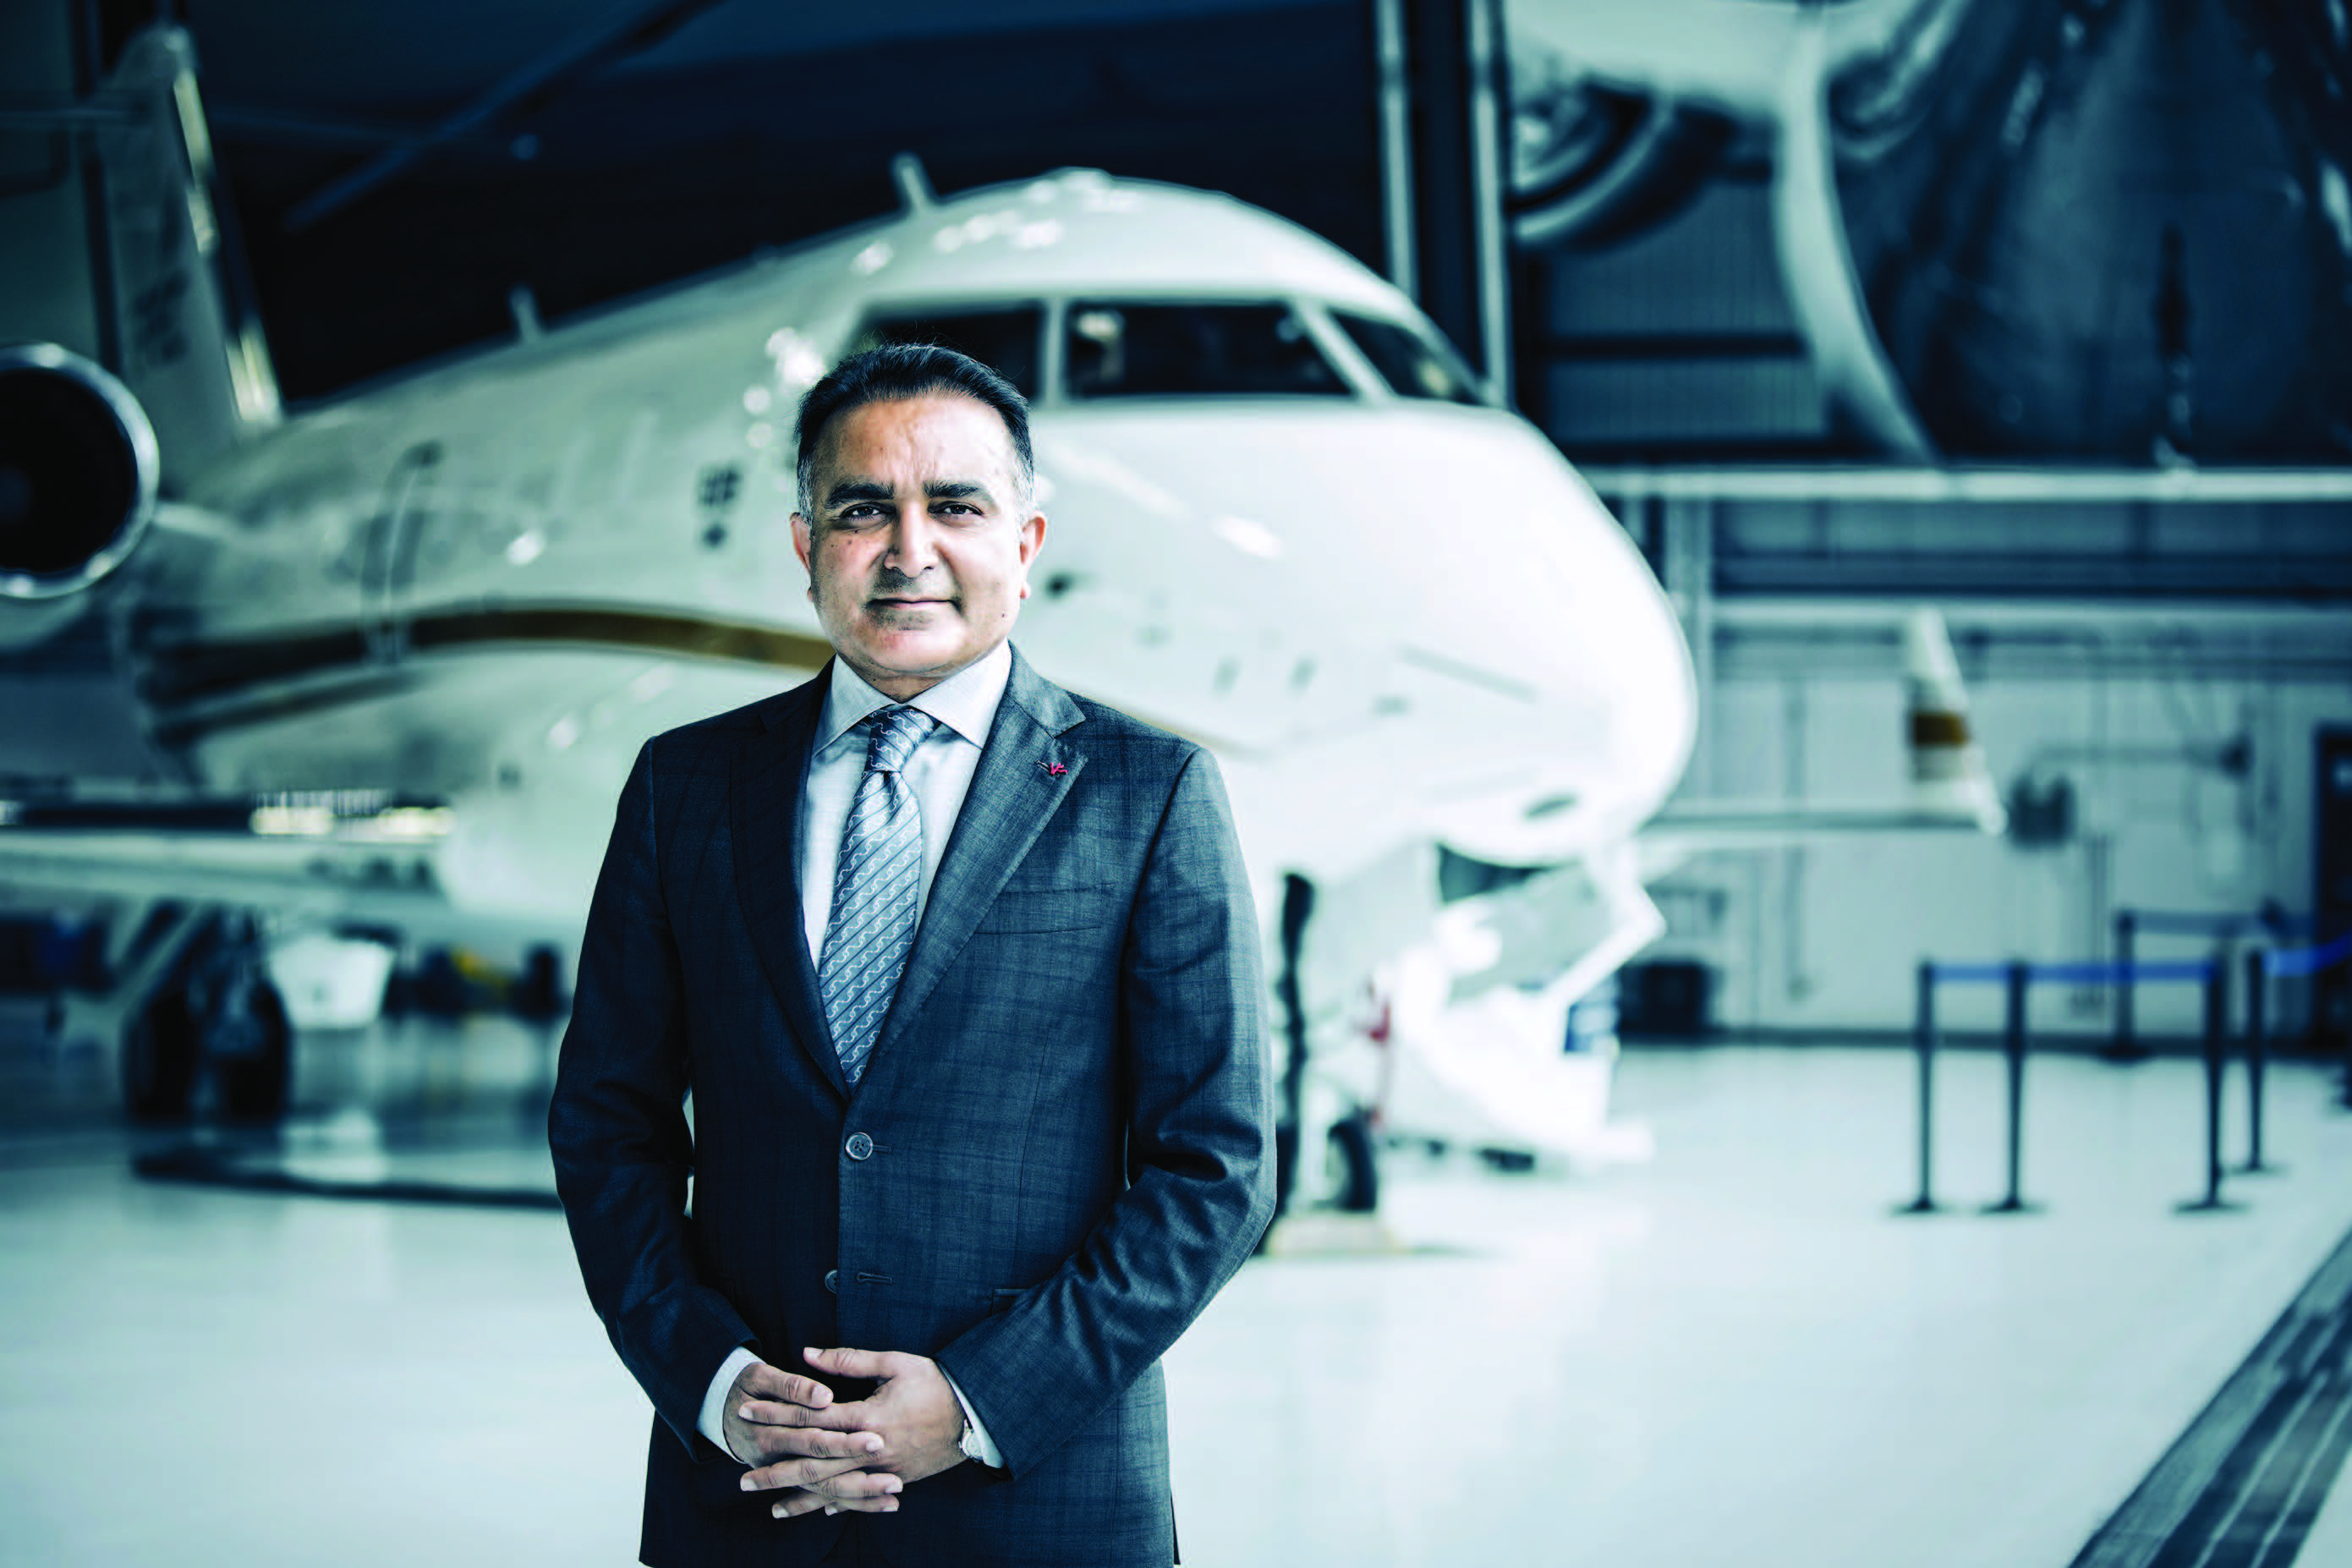 Family Man Bombardier Business Aircraft